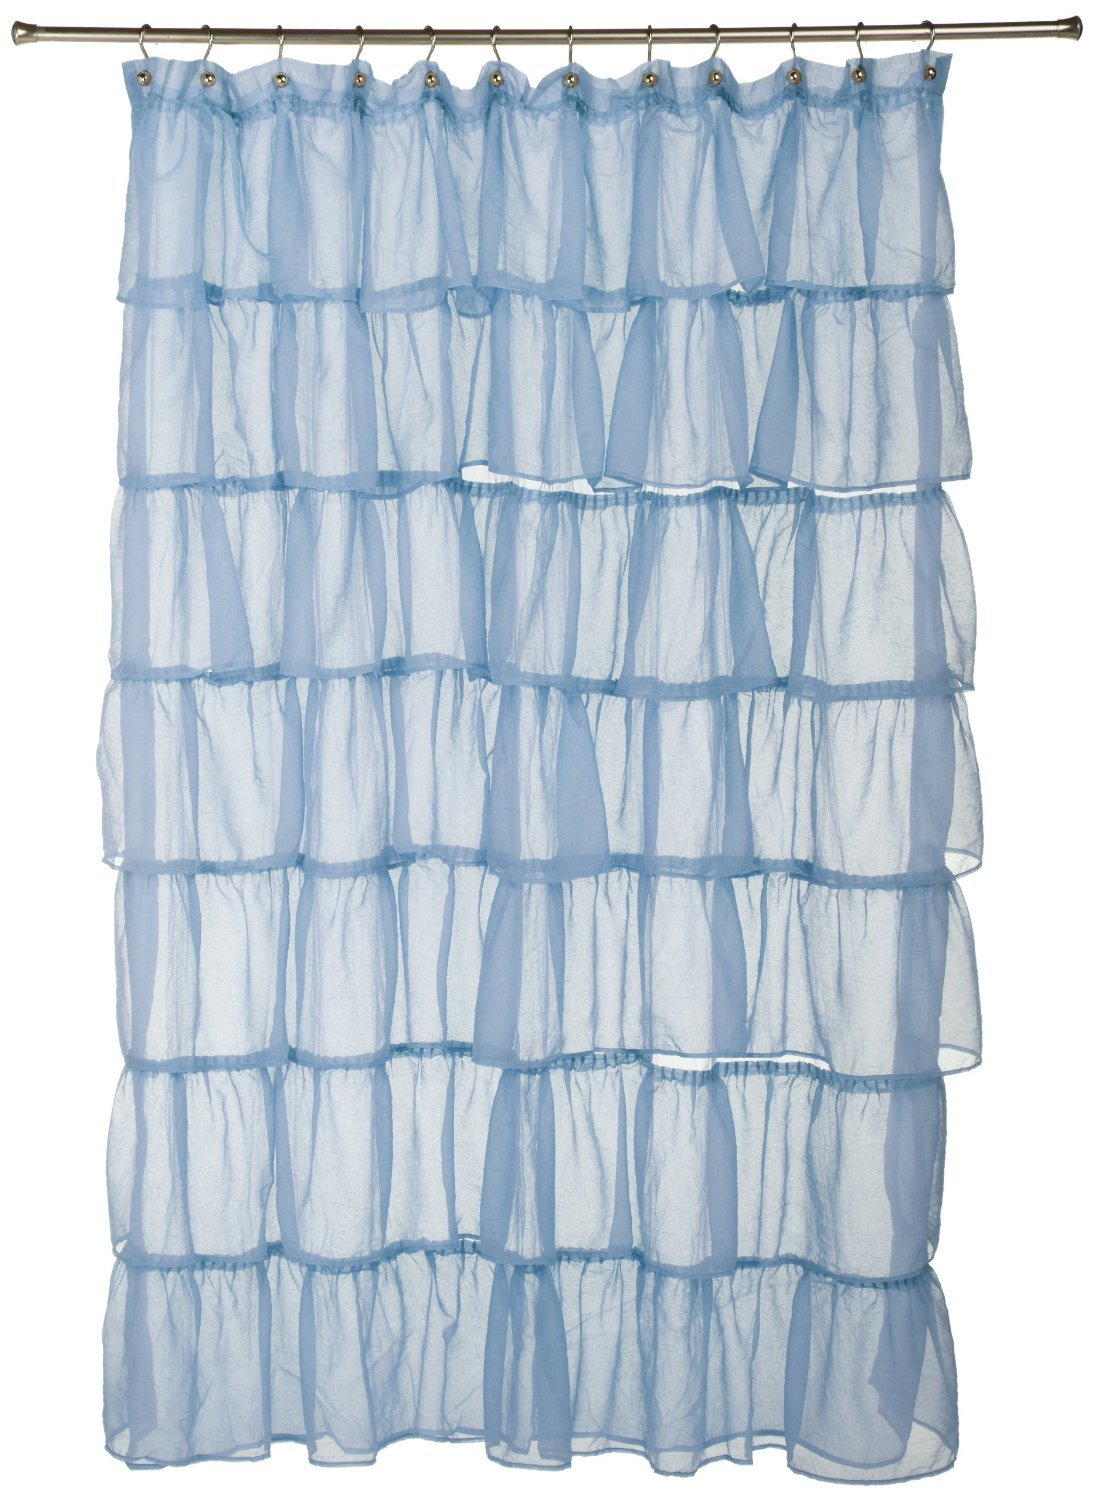 Amazon.com: Lorraine Home Fashions Gypsy Ruffled Shower Curtain, 70 ...